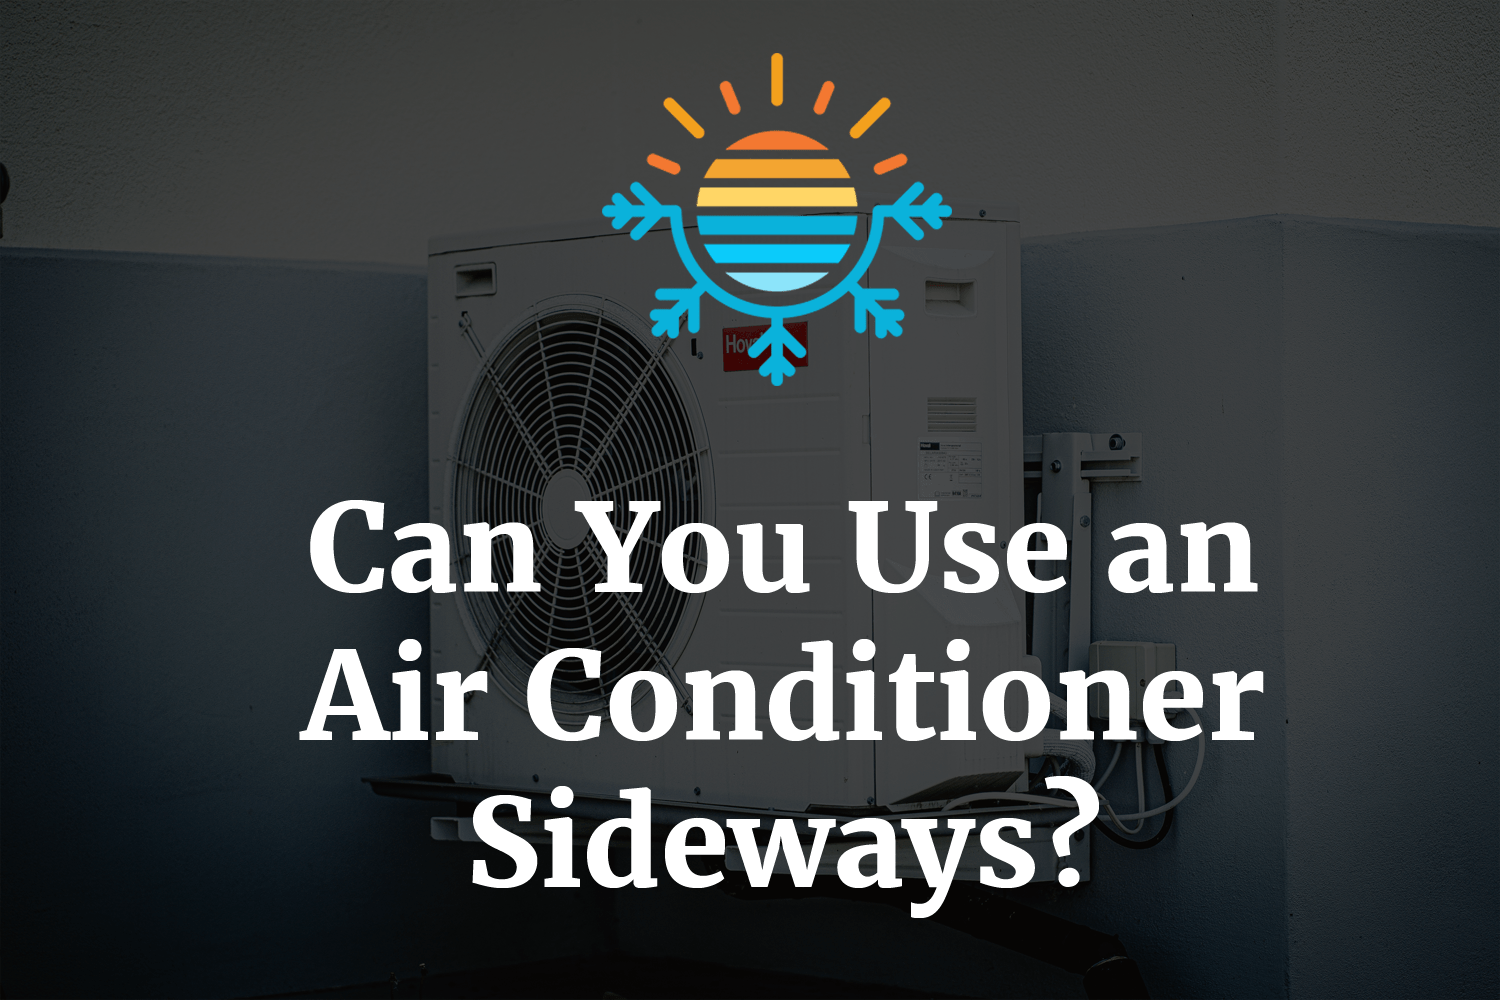 Can You Use an Air Conditioner Sideways